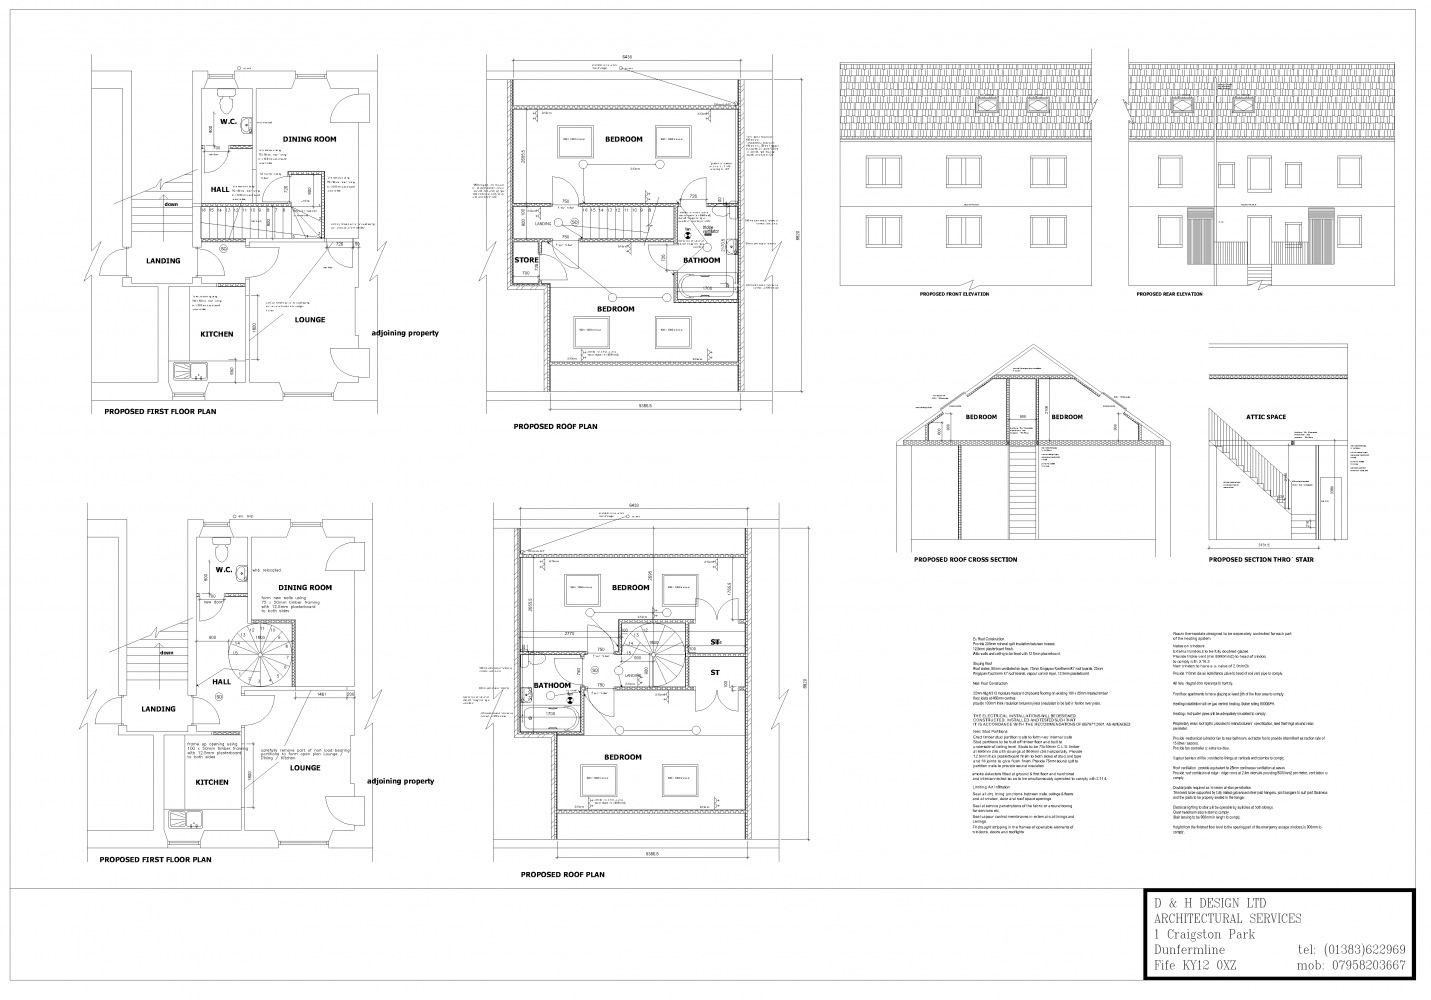 loft conversion plans 3 10 from 92 votes loft conversion plans 5 10 ...